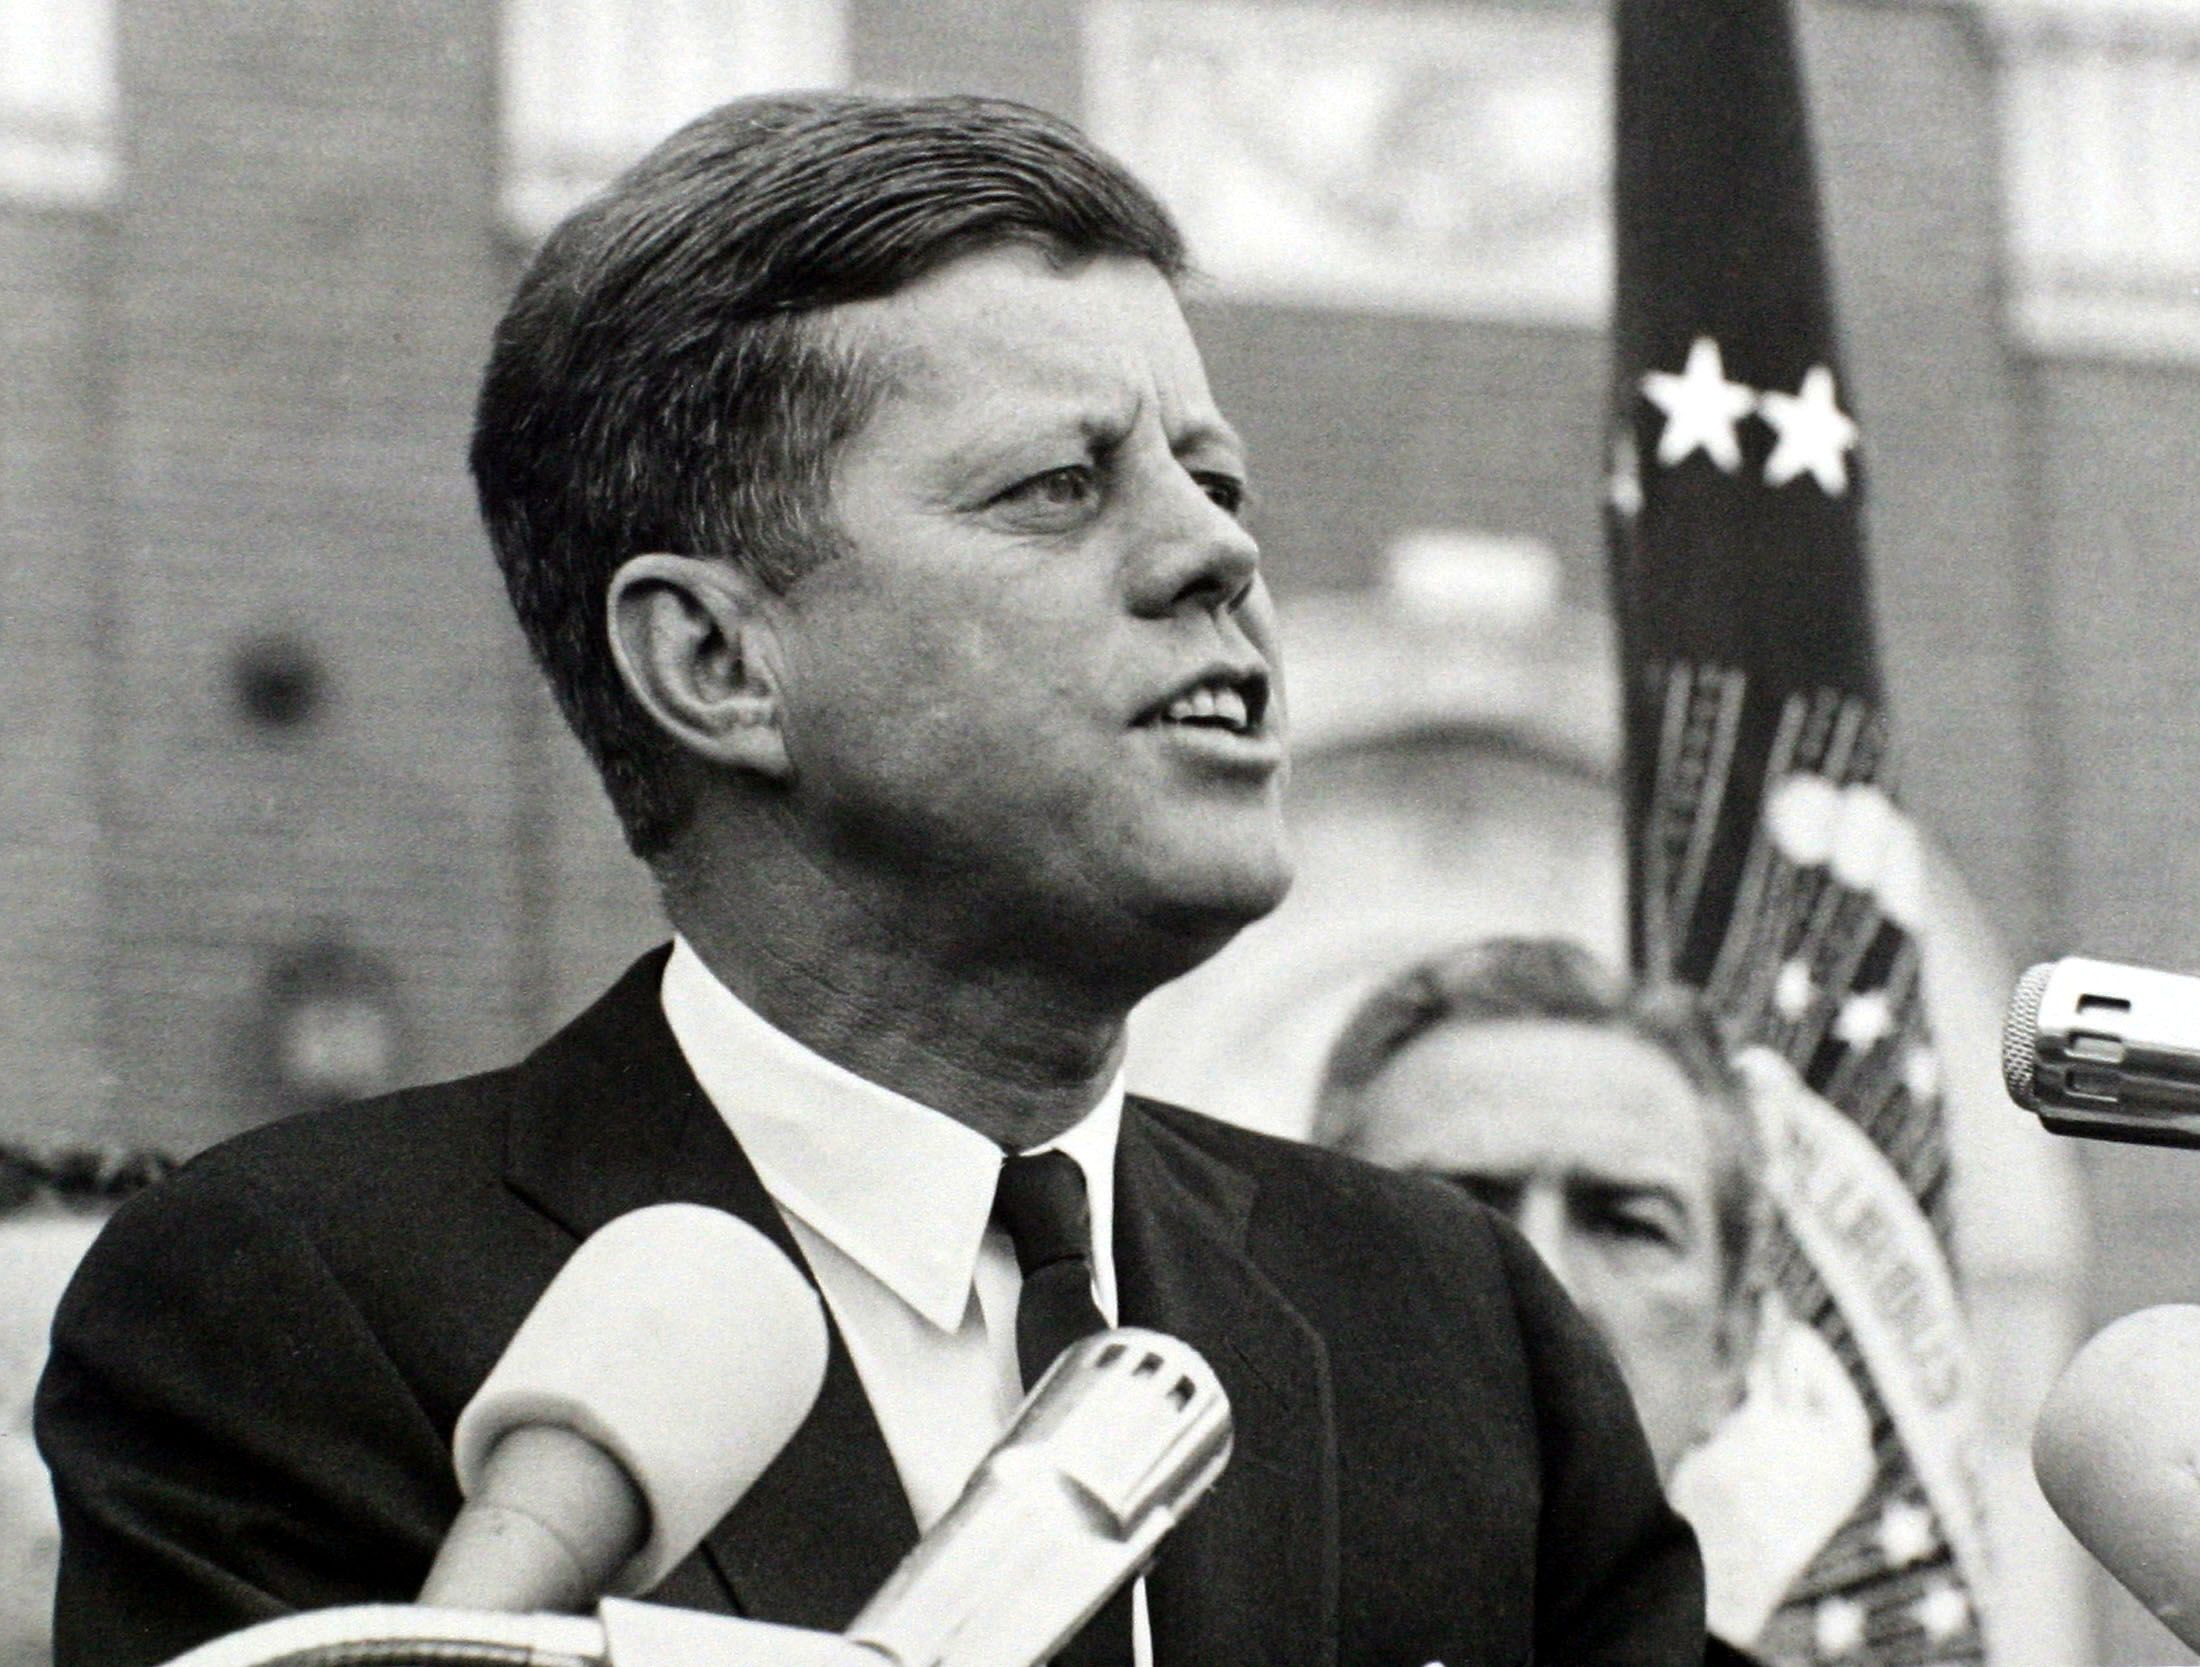 the triumph of john f kennedy during the cold war 2 Jfk's inaugural speech, 50 years later jfk's inaugural address, delivered 50 years ago today, speaks to cold war challenges far removed from our own.